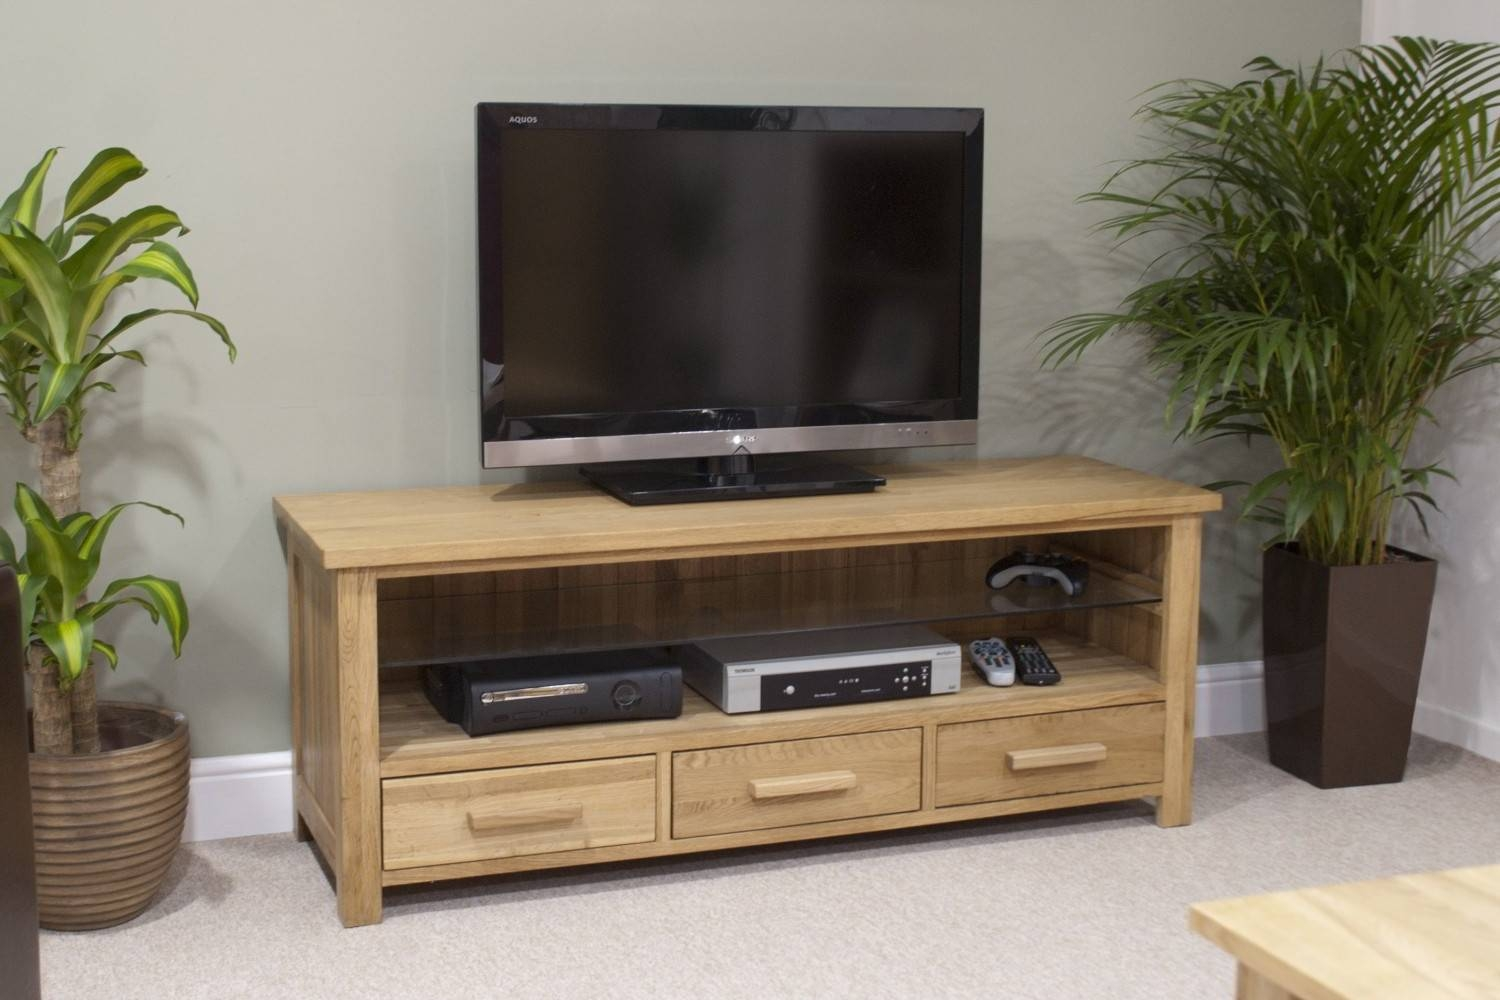 Eton Solid Oak Living Room Furniture Widescreen Tv Cabinet Stand inside Wide Screen Tv Stands (Image 8 of 15)